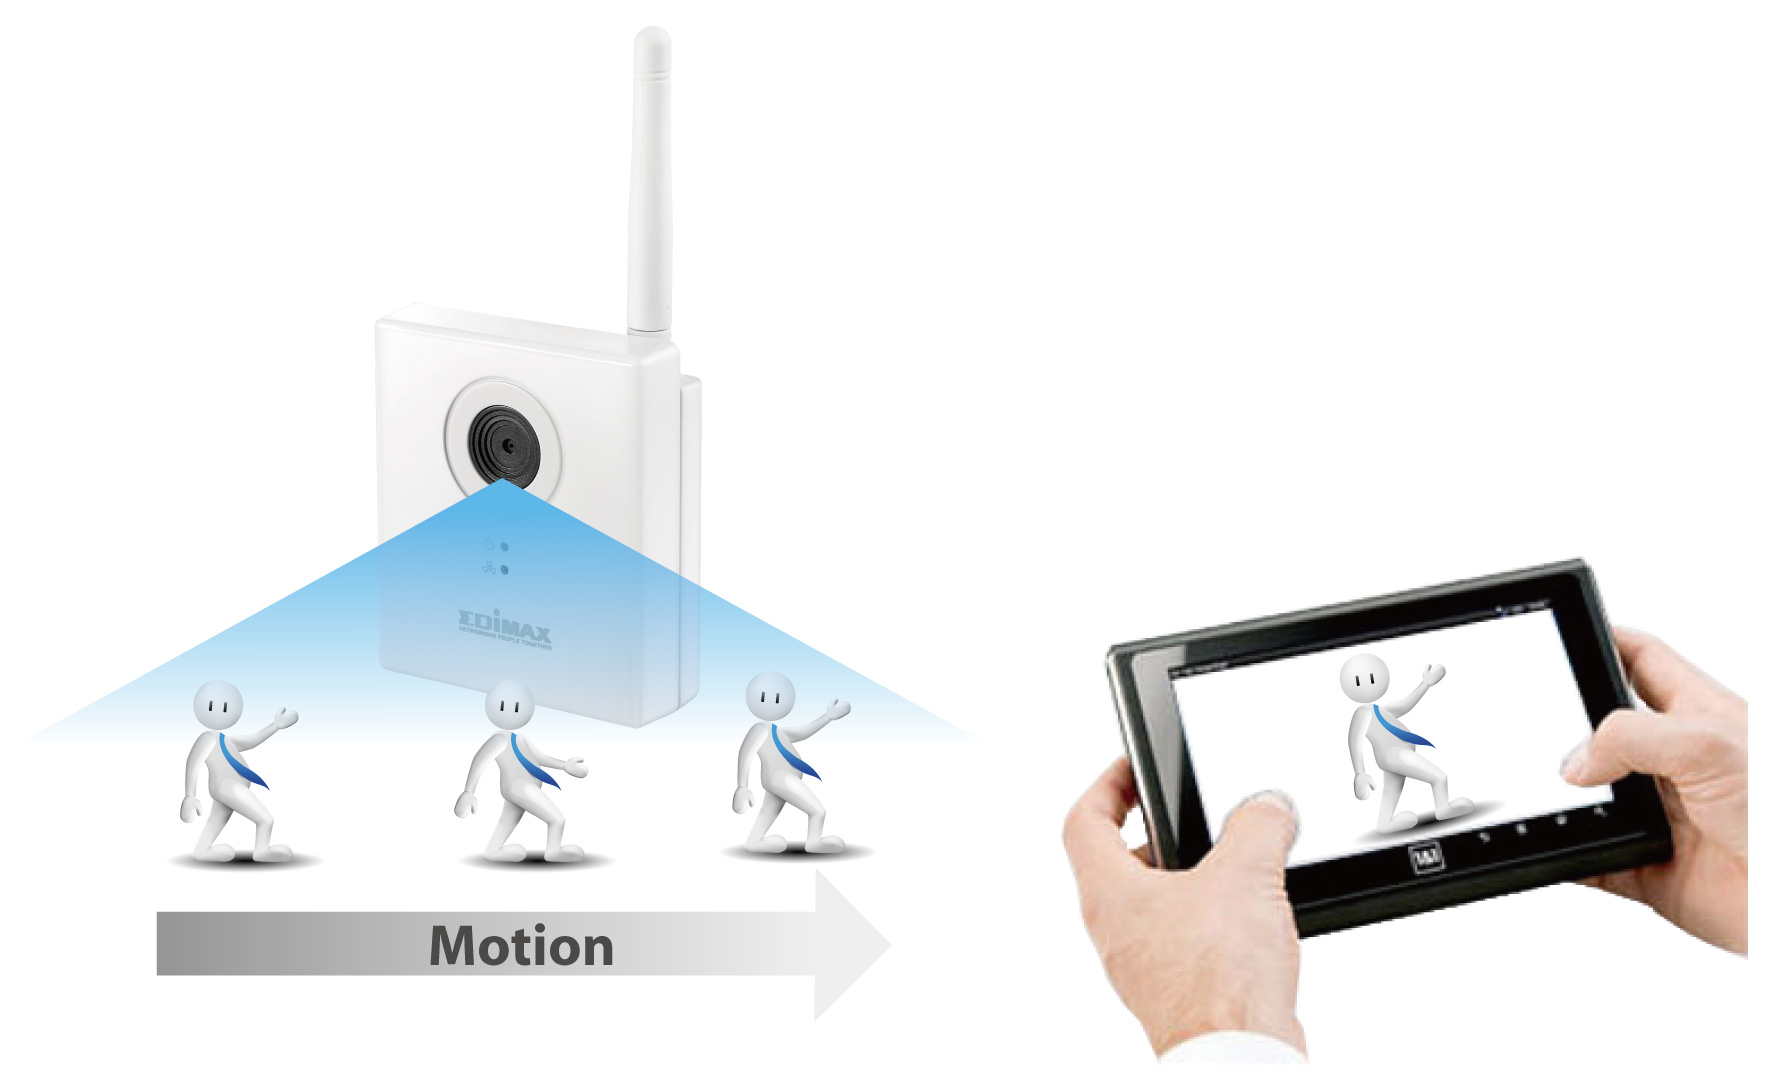 Edimax IC-3115W 1.3Mpx Wireless Network Camera, Motion Triggered Snapshots